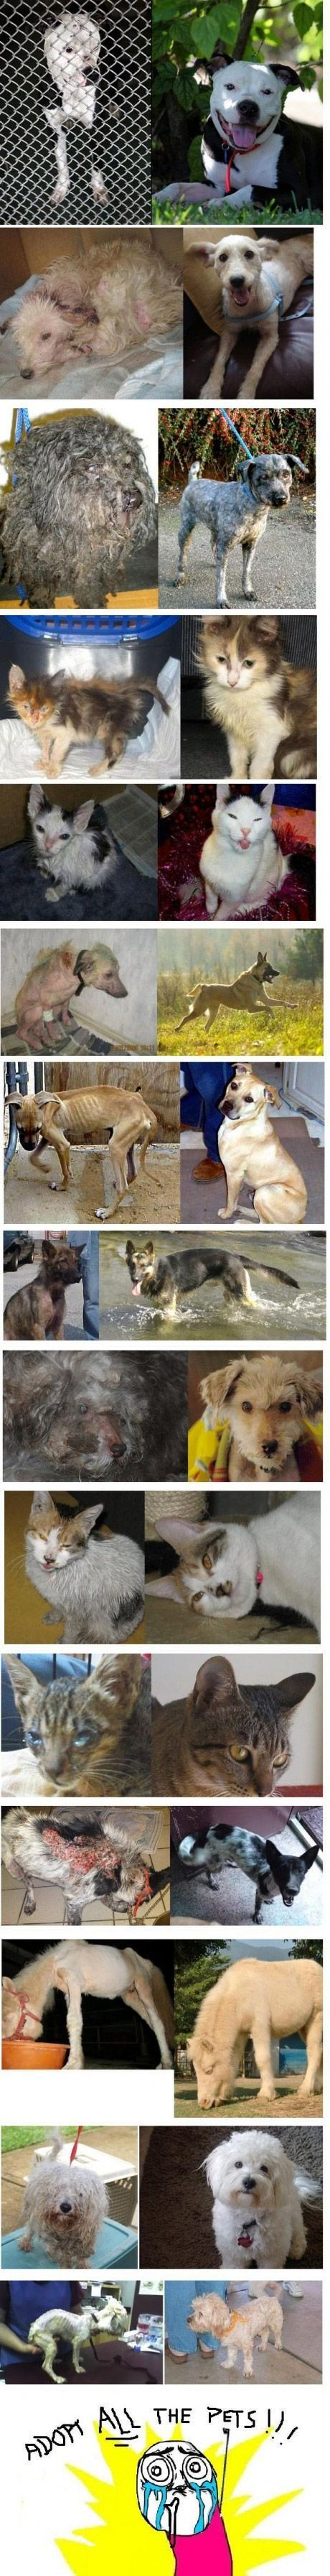 Before and after adoption.  If I ever get a dog it will be a rescue dog.: Rescue Dogs, Animal Rescue, Animal Shelters, Before After, Happy End, Rescue Animal, My Heart, Make A Difference, Pet Adoption